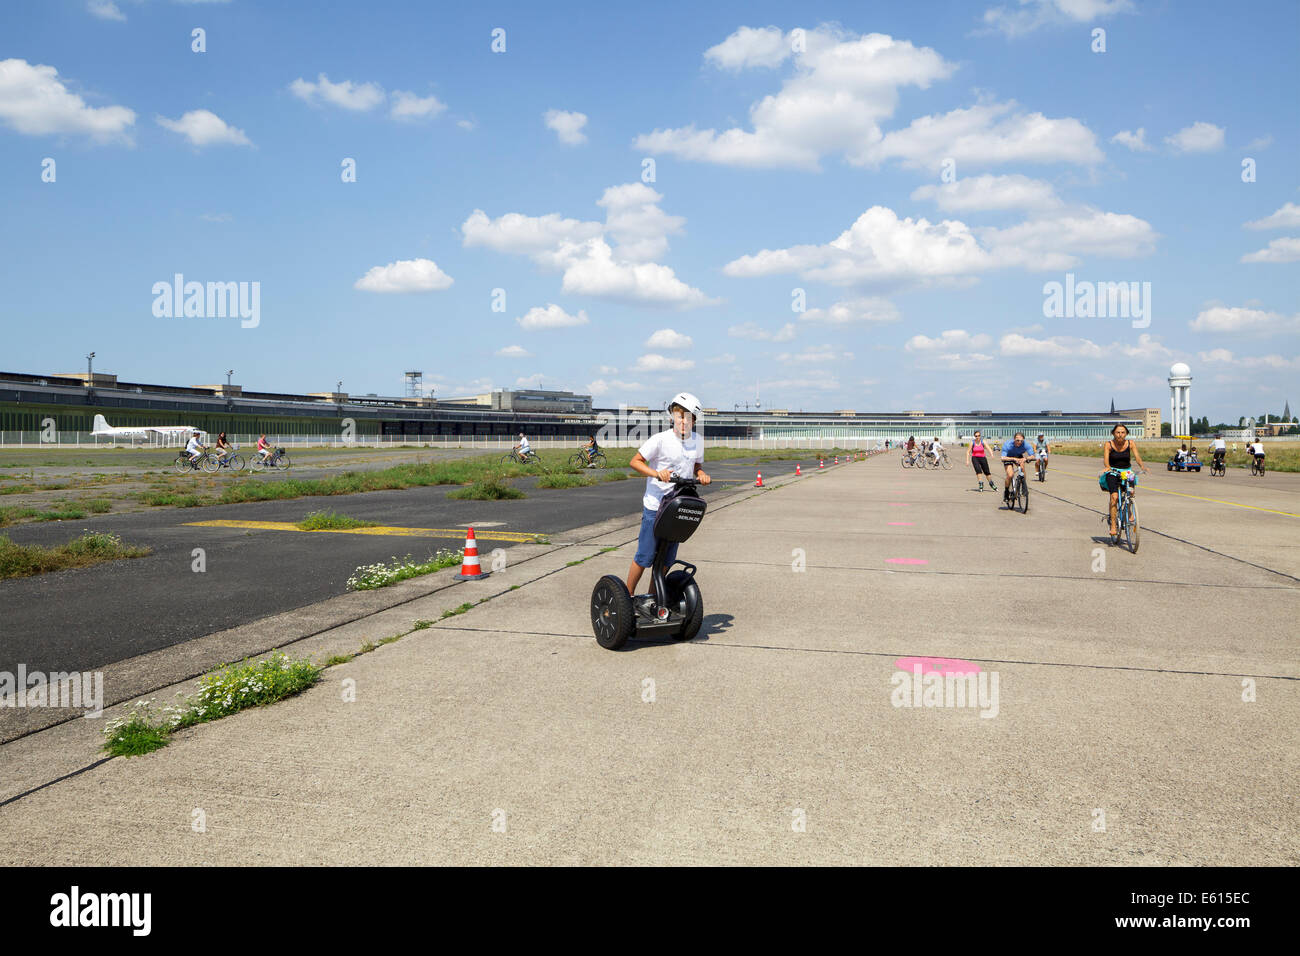 People doing various sports at Tempelhof Park, former Tempelhof airport, Berlin, Germany - Stock Image